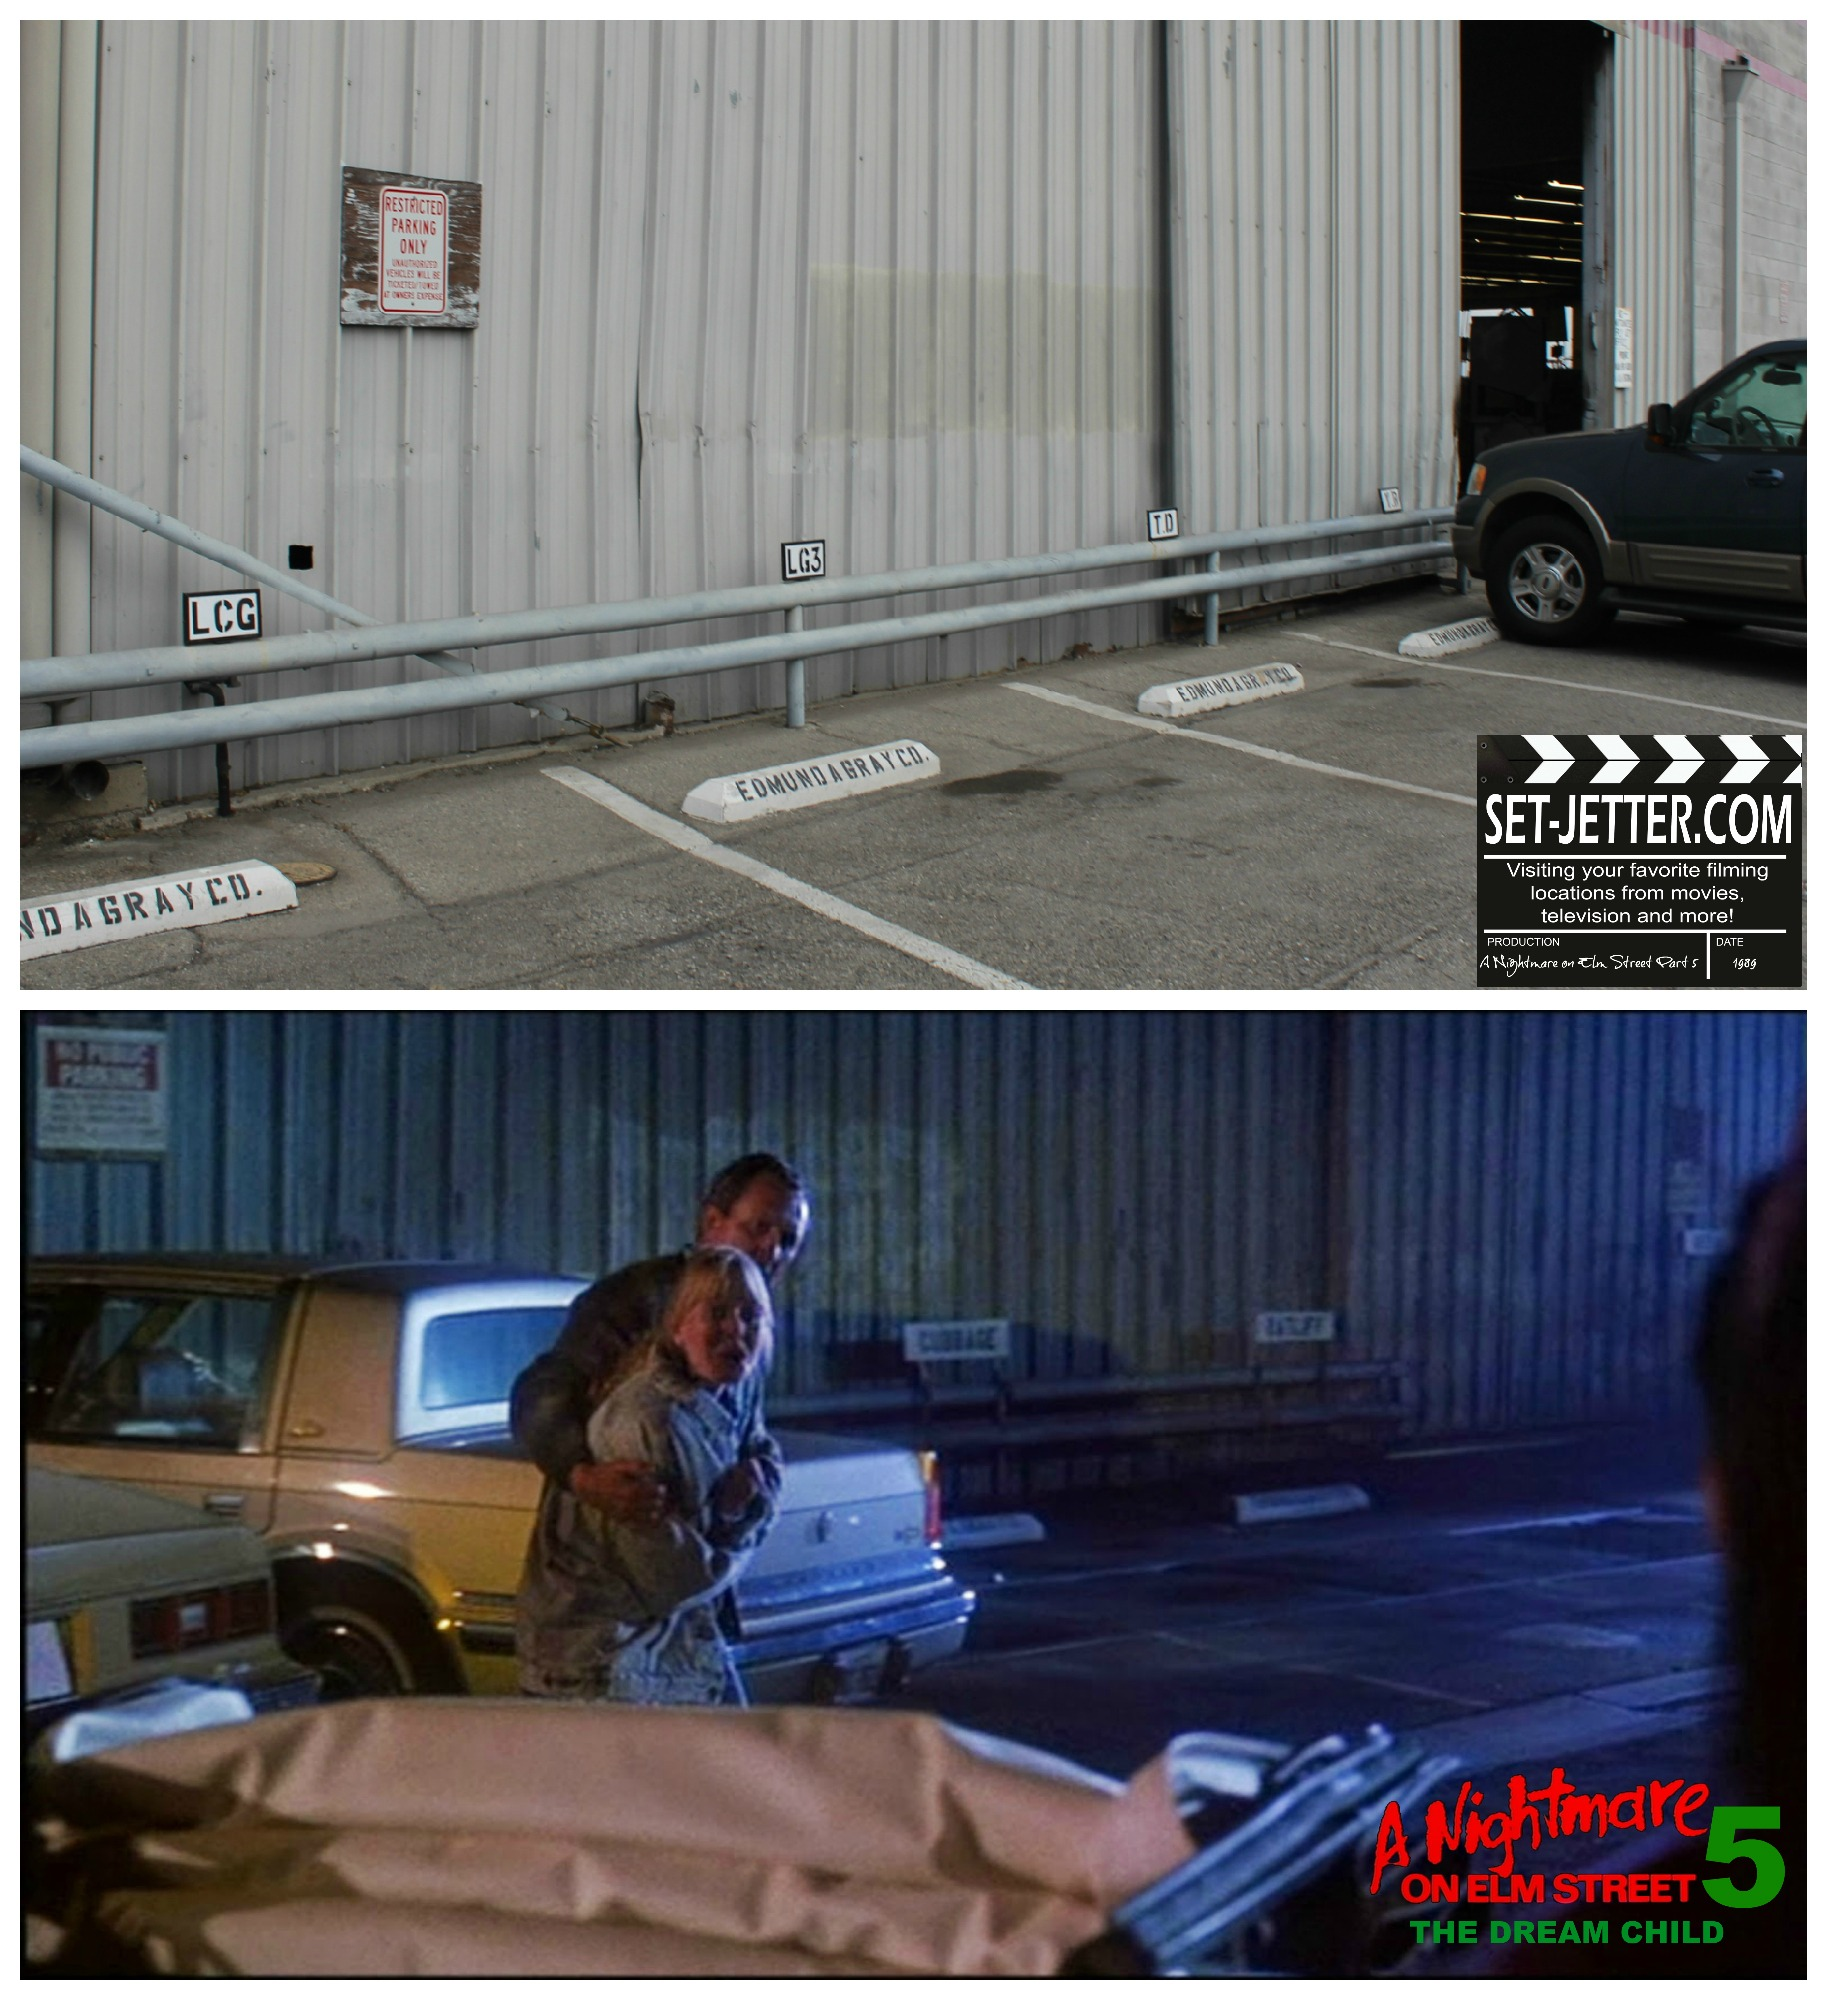 Nightmare on Elm Street Part 5 comparison 11.jpg